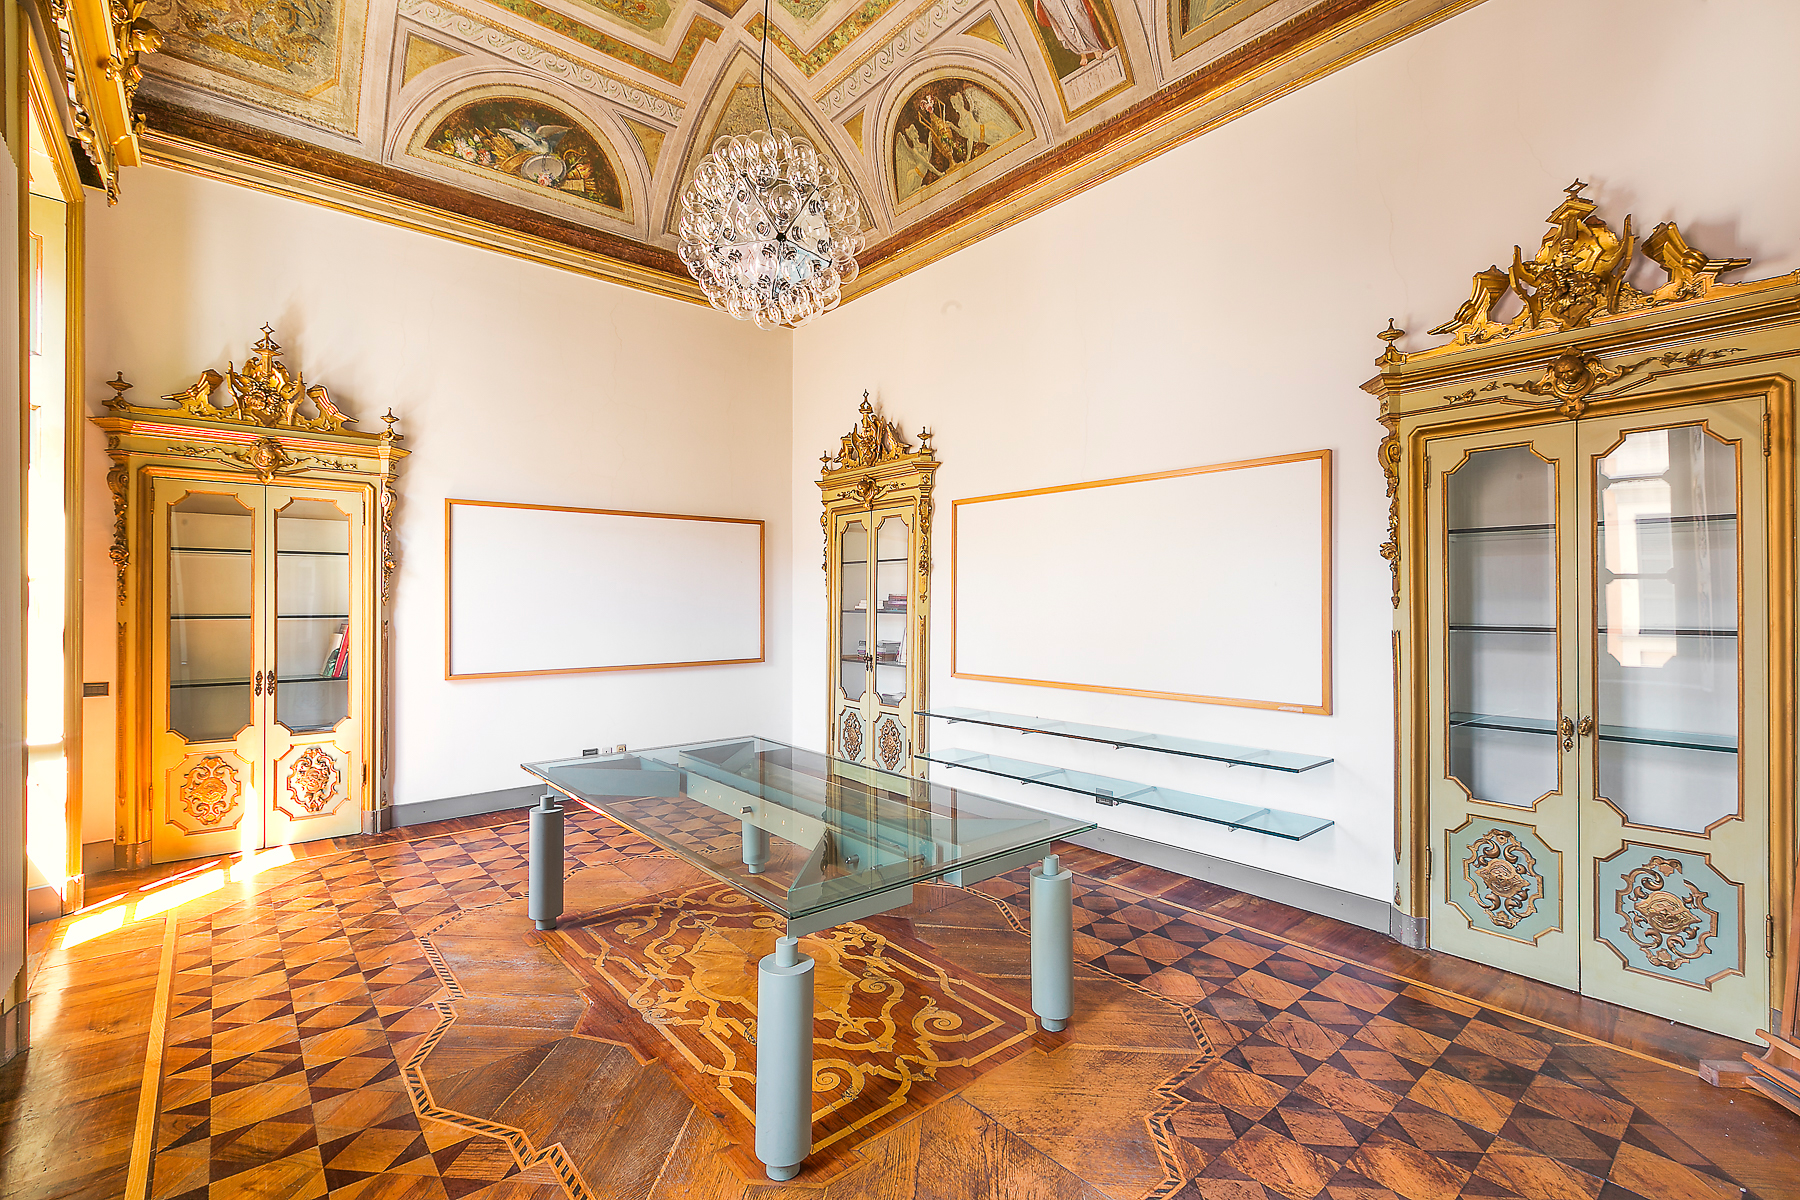 Additional photo for property listing at Exquisite office in the center of Novara Via Negroni Novara, Novara 28100 Italy